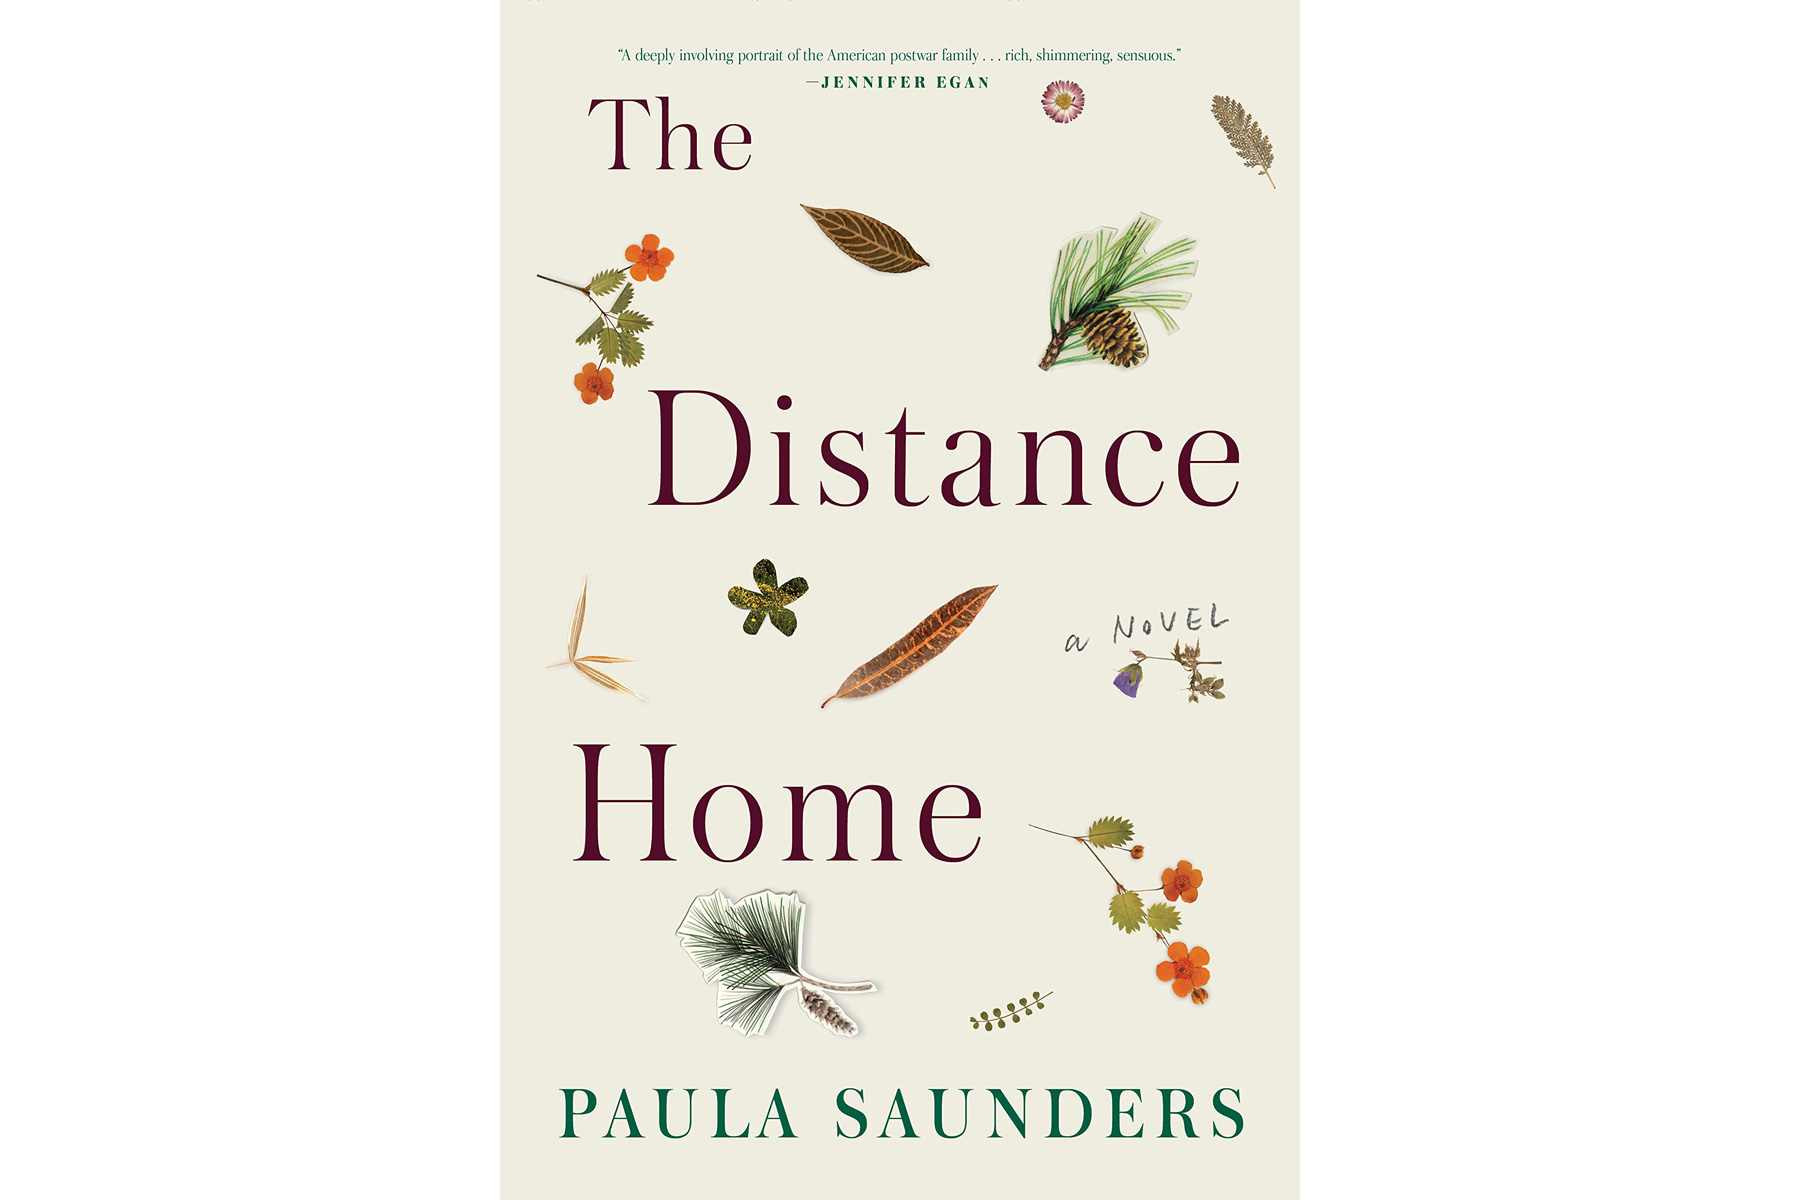 The Distance Home, by Paula Saunders